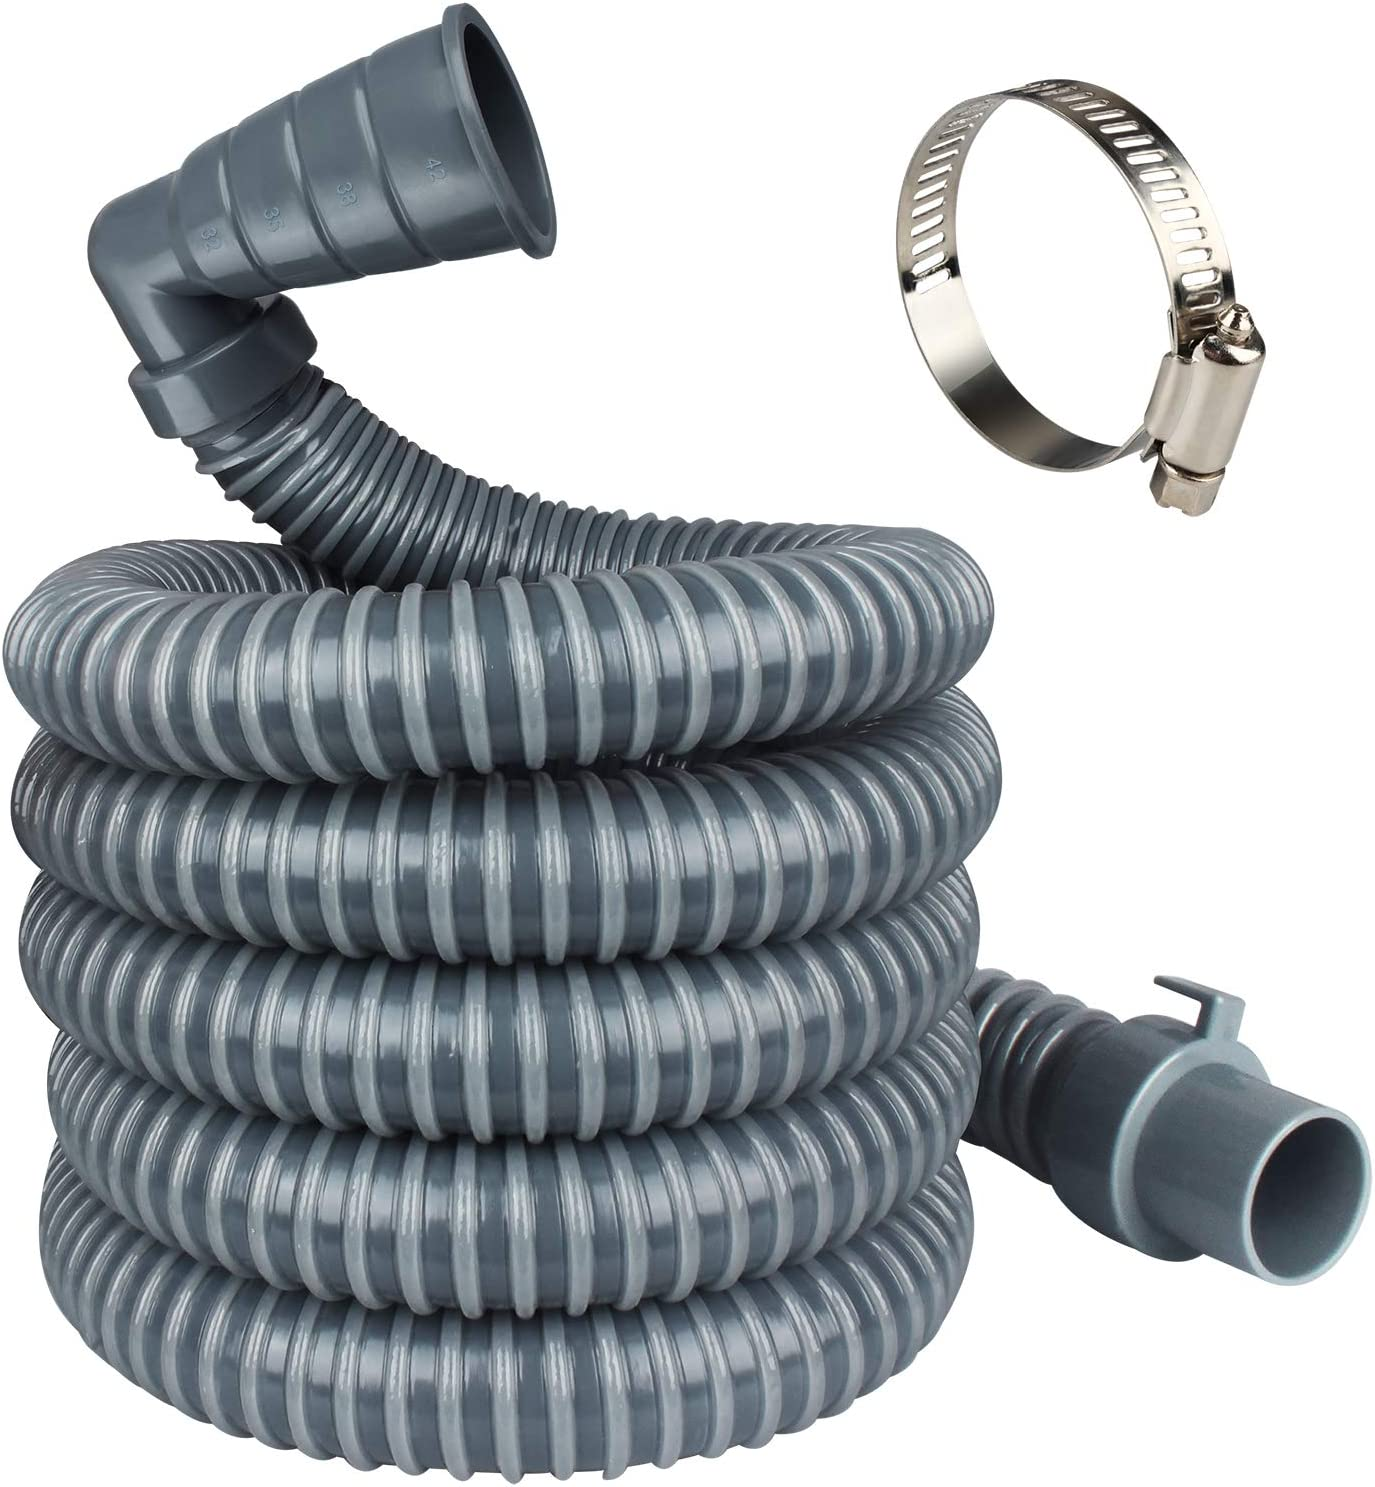 MyLifeUNIT Washing Machine Drain Hose Extension Kit, 10-Feet